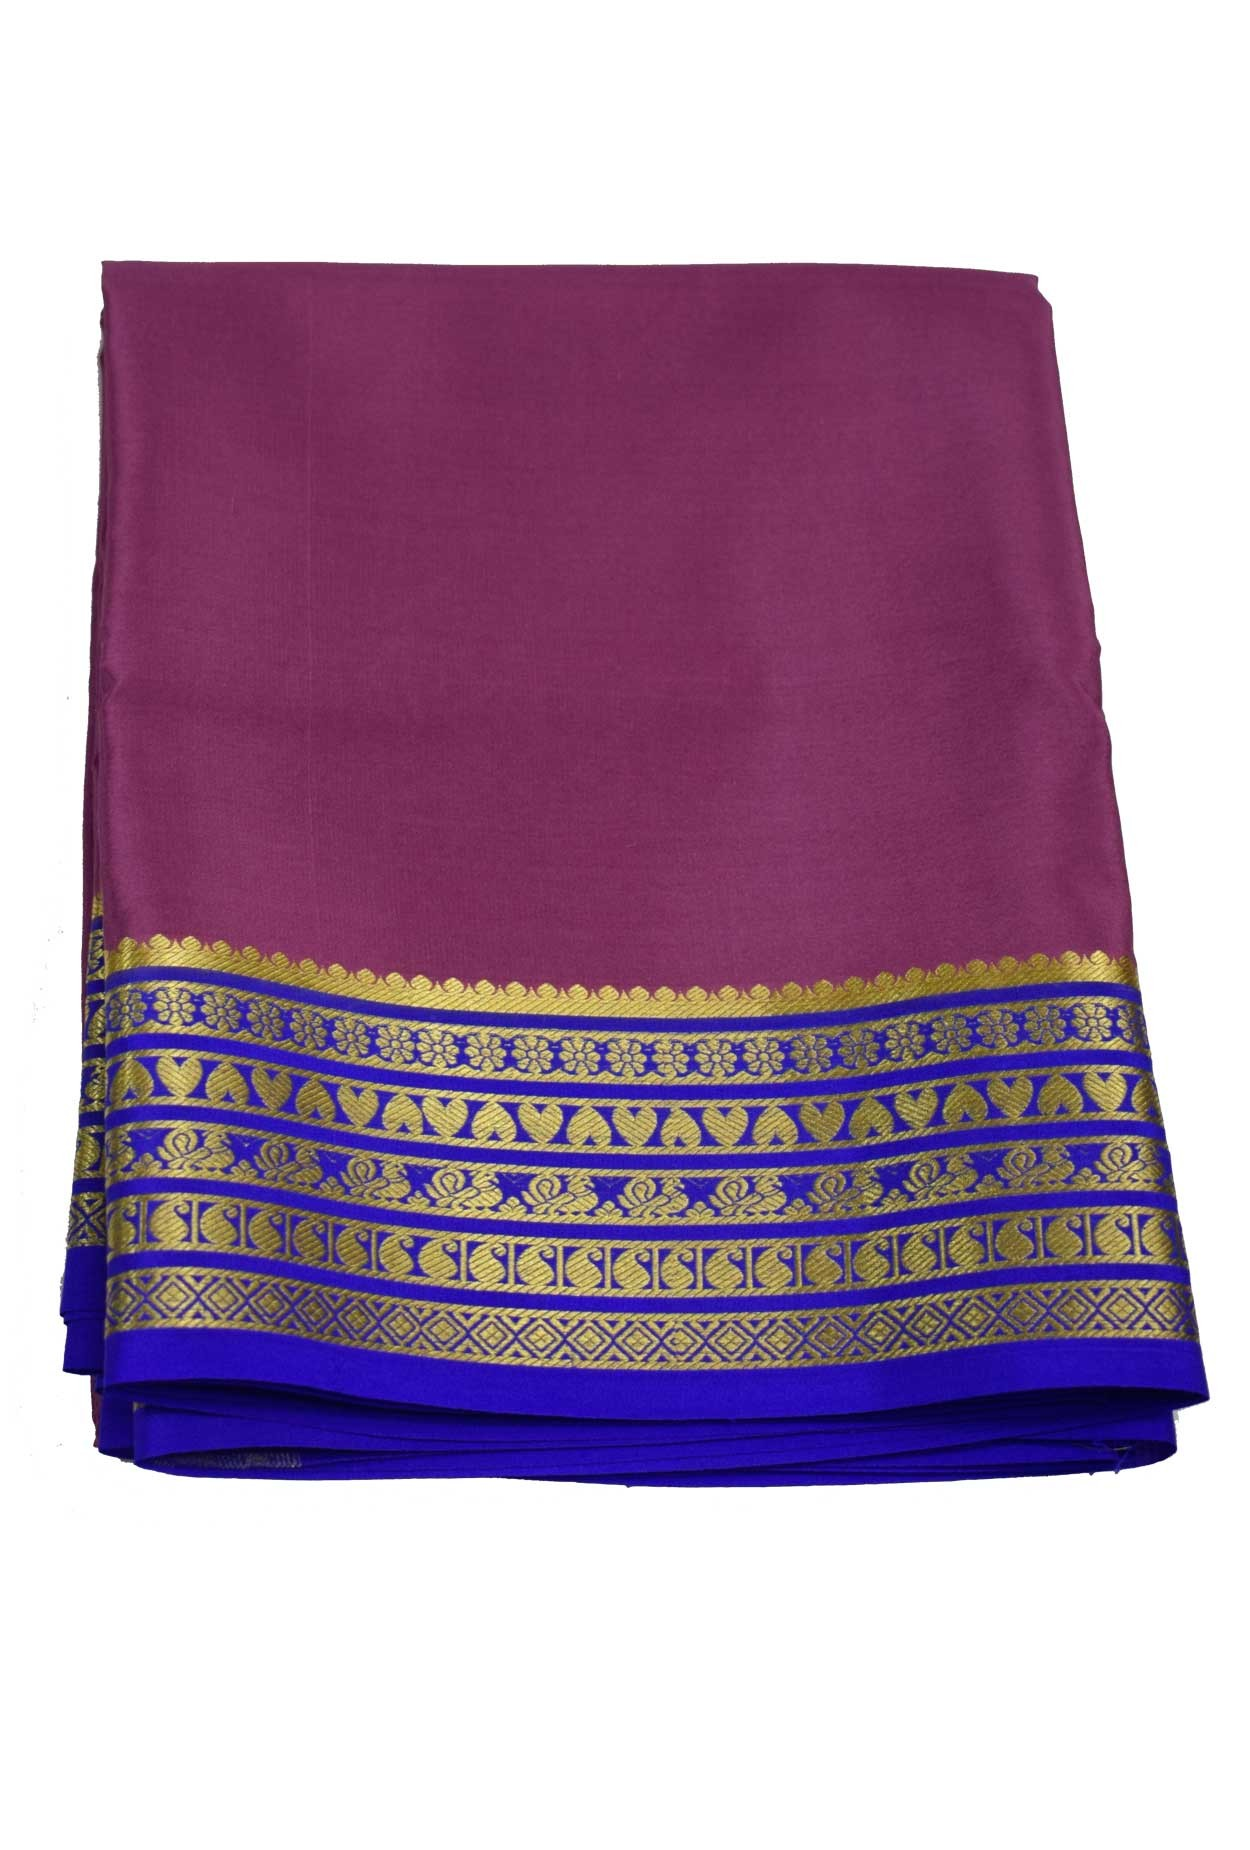 100% Pure Crape Mysore Traditional Silk Saree sc-25 onoin-royal blue